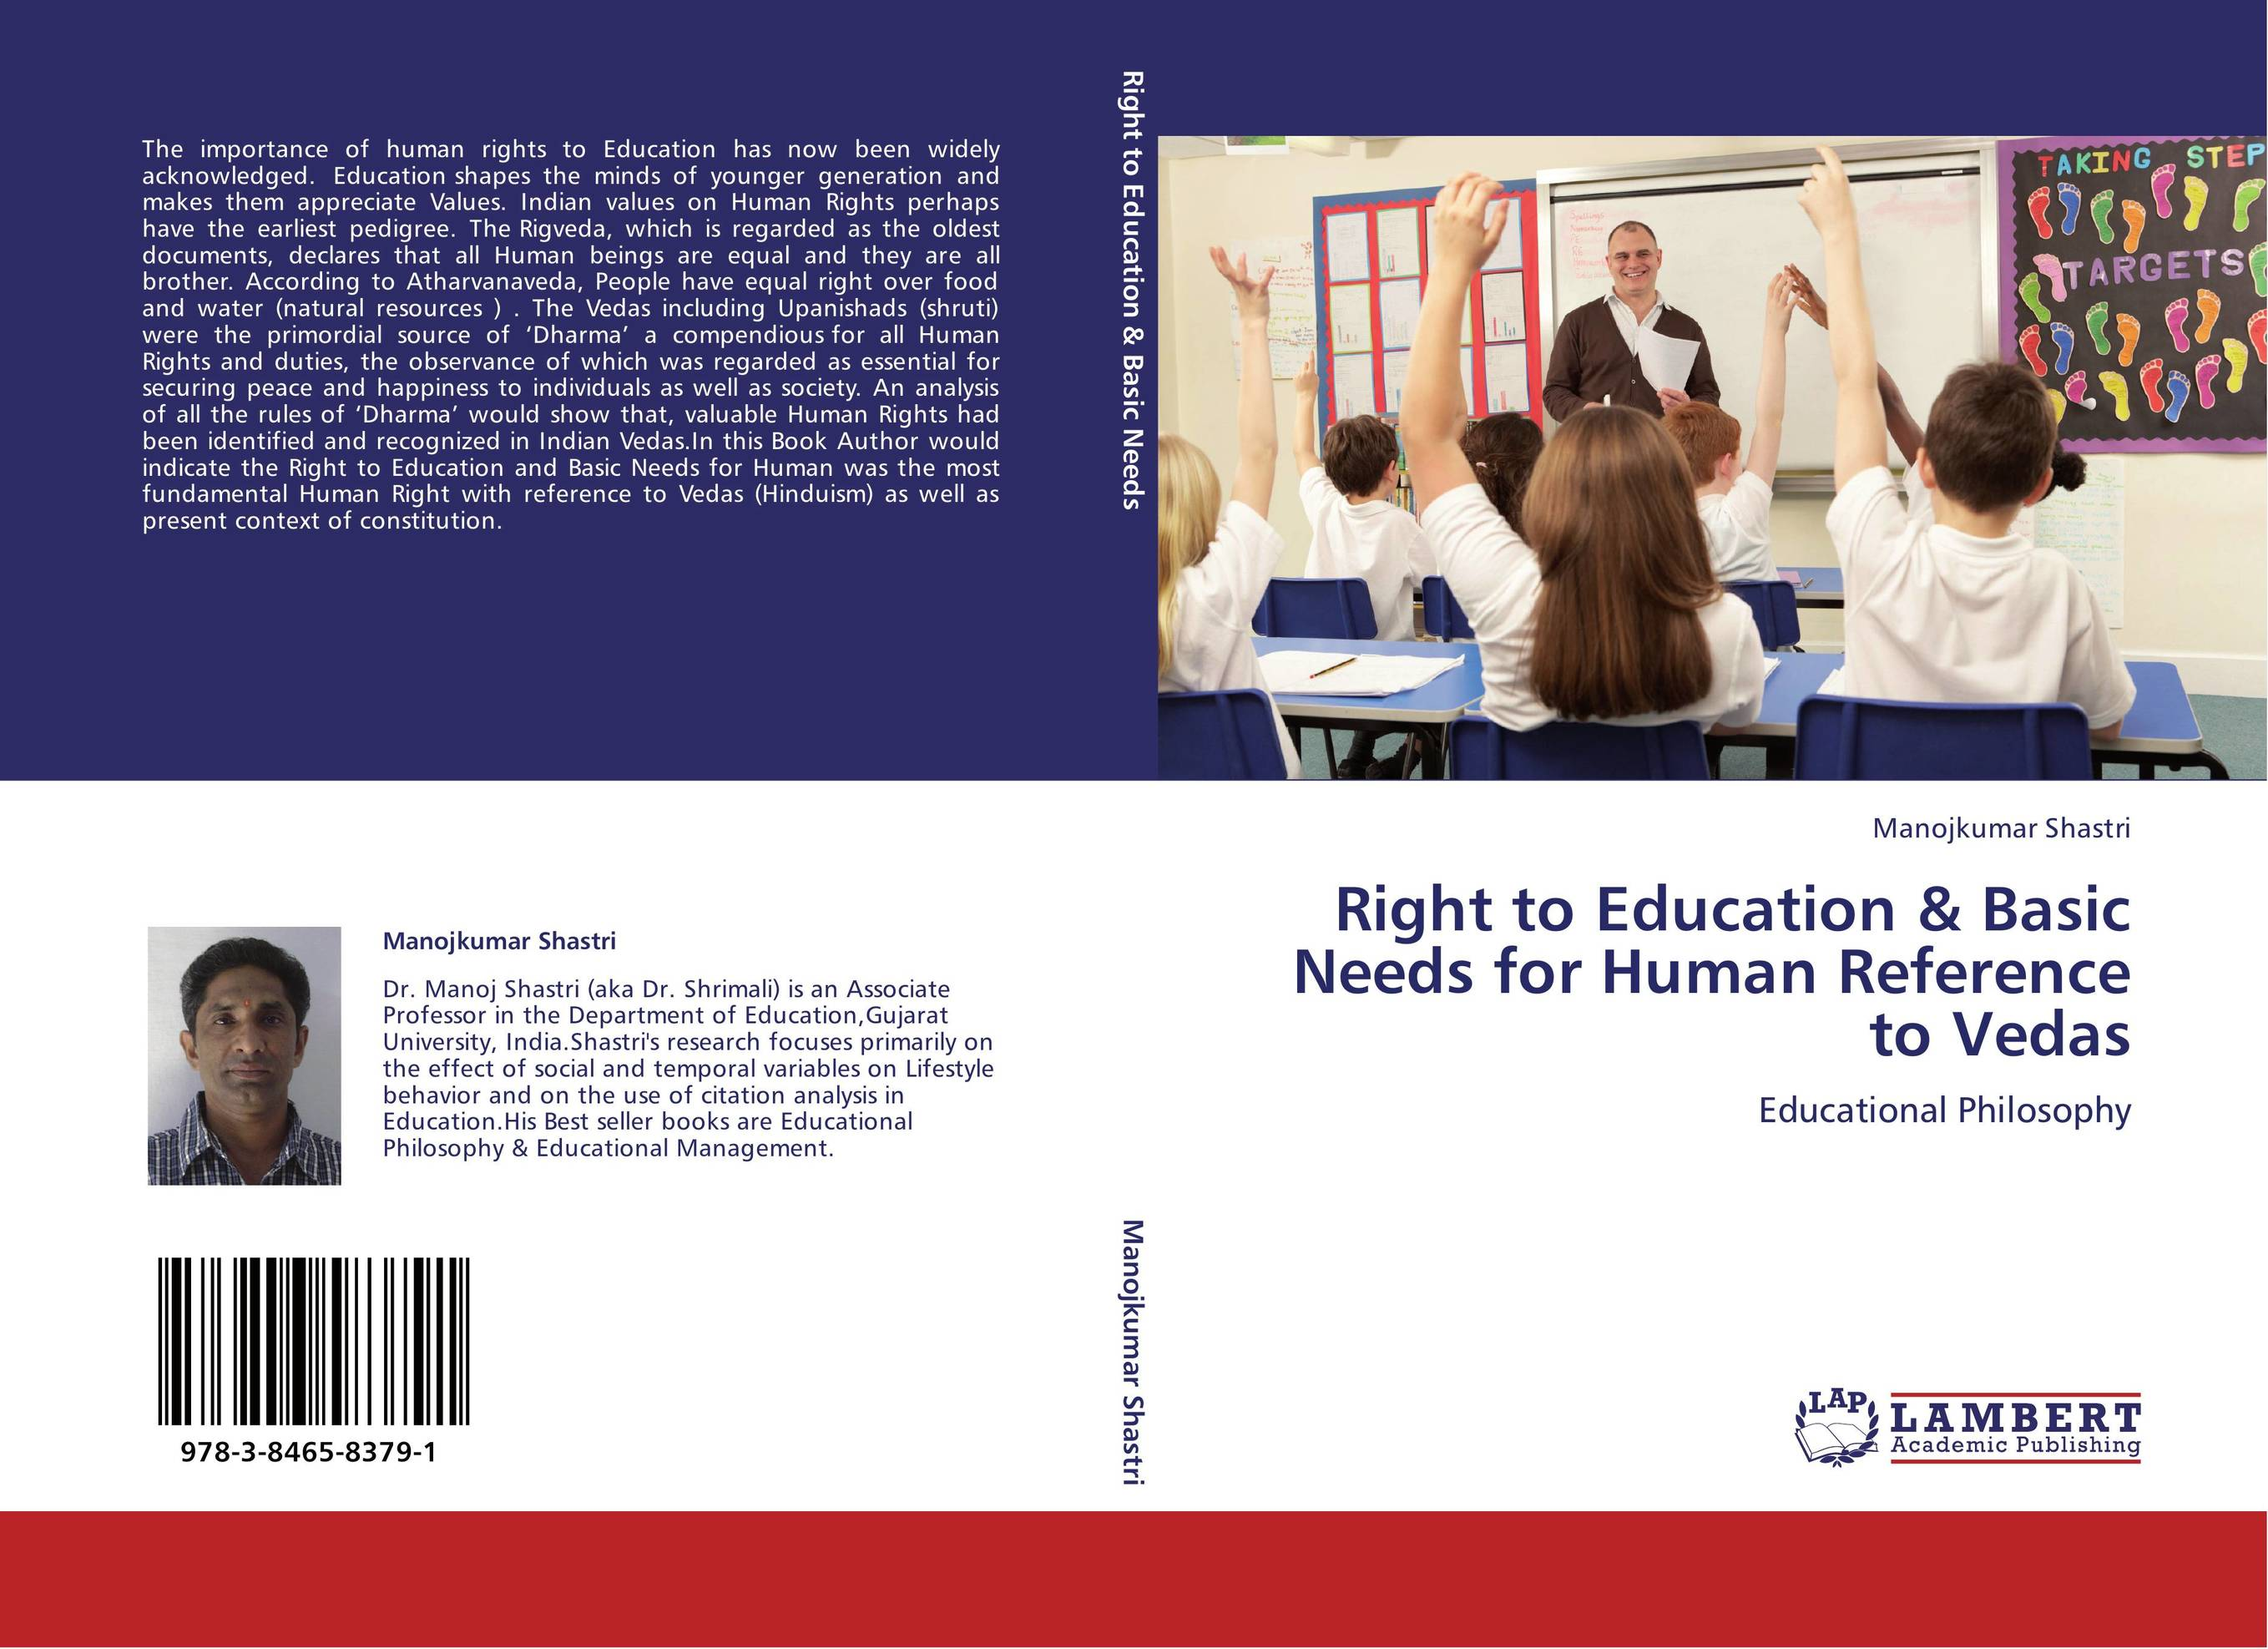 an educational philosophy The philosophy of education, however, is the study of the key philosophical ideas that have had an impact on educational theories a distinction must be made between philosophy and educational theories.